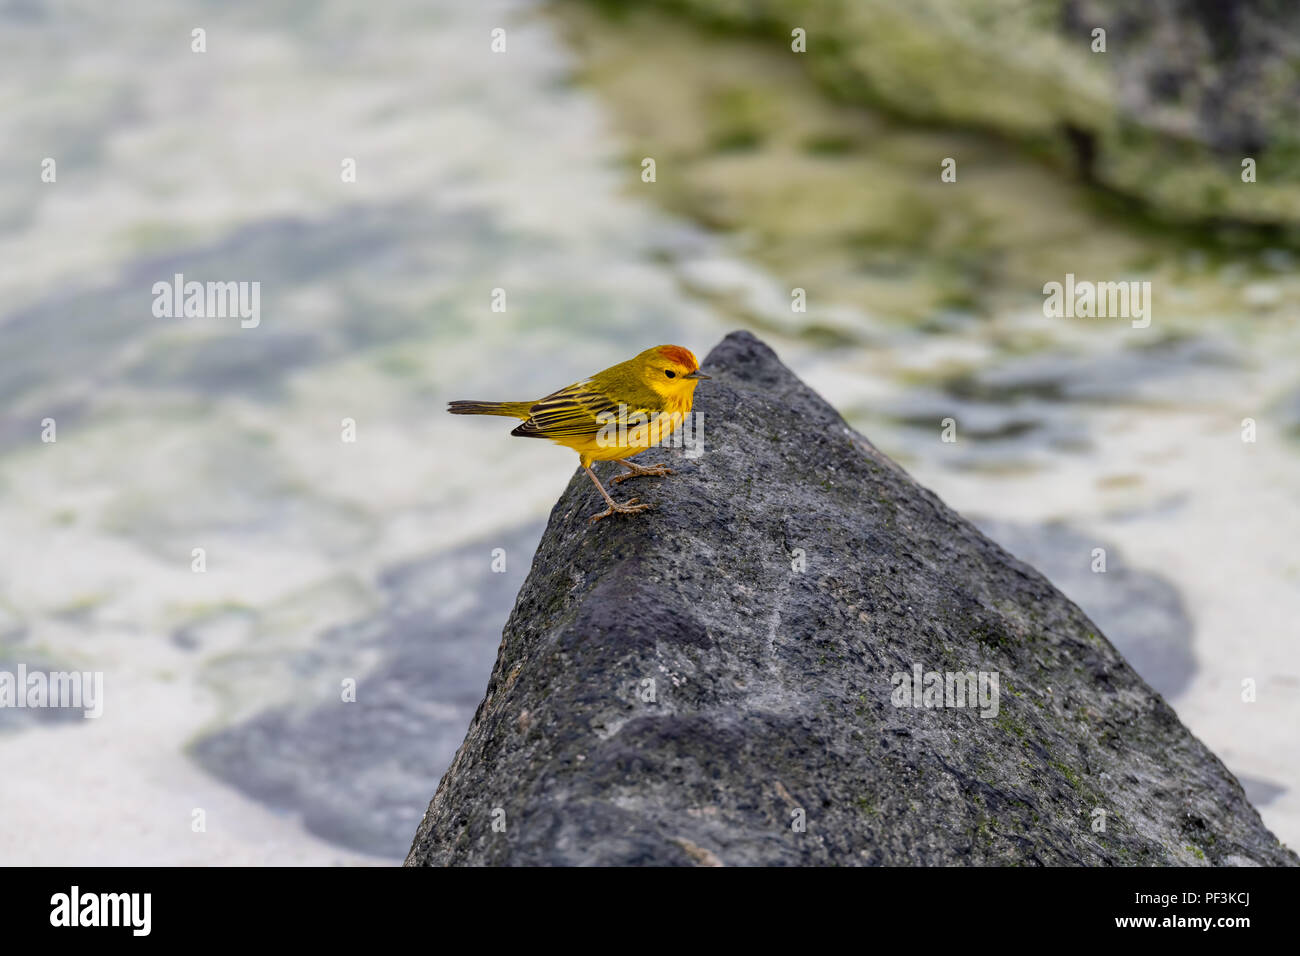 Male Galapagos yellow warbler (Dendroica petechia) - Stock Image